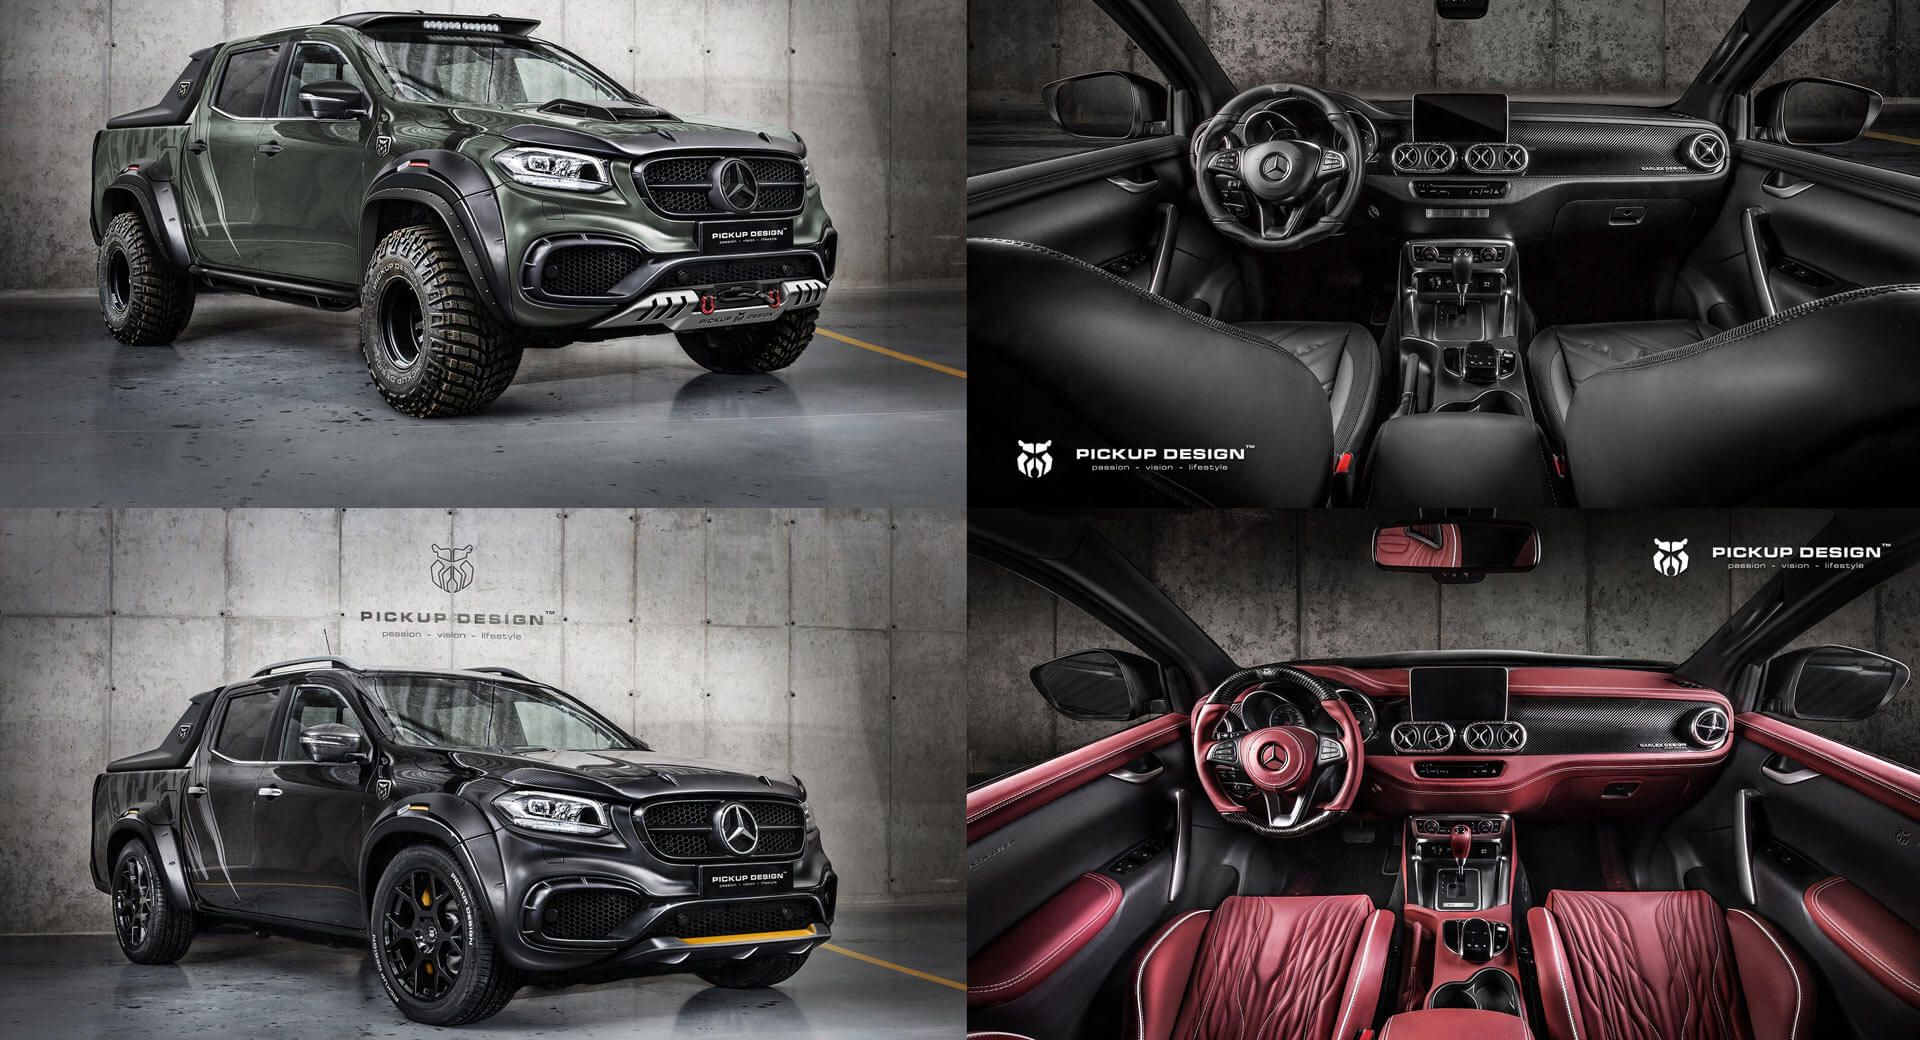 Beauty And The Beast Mercedes X Class Gets Two Tuning Jobs From